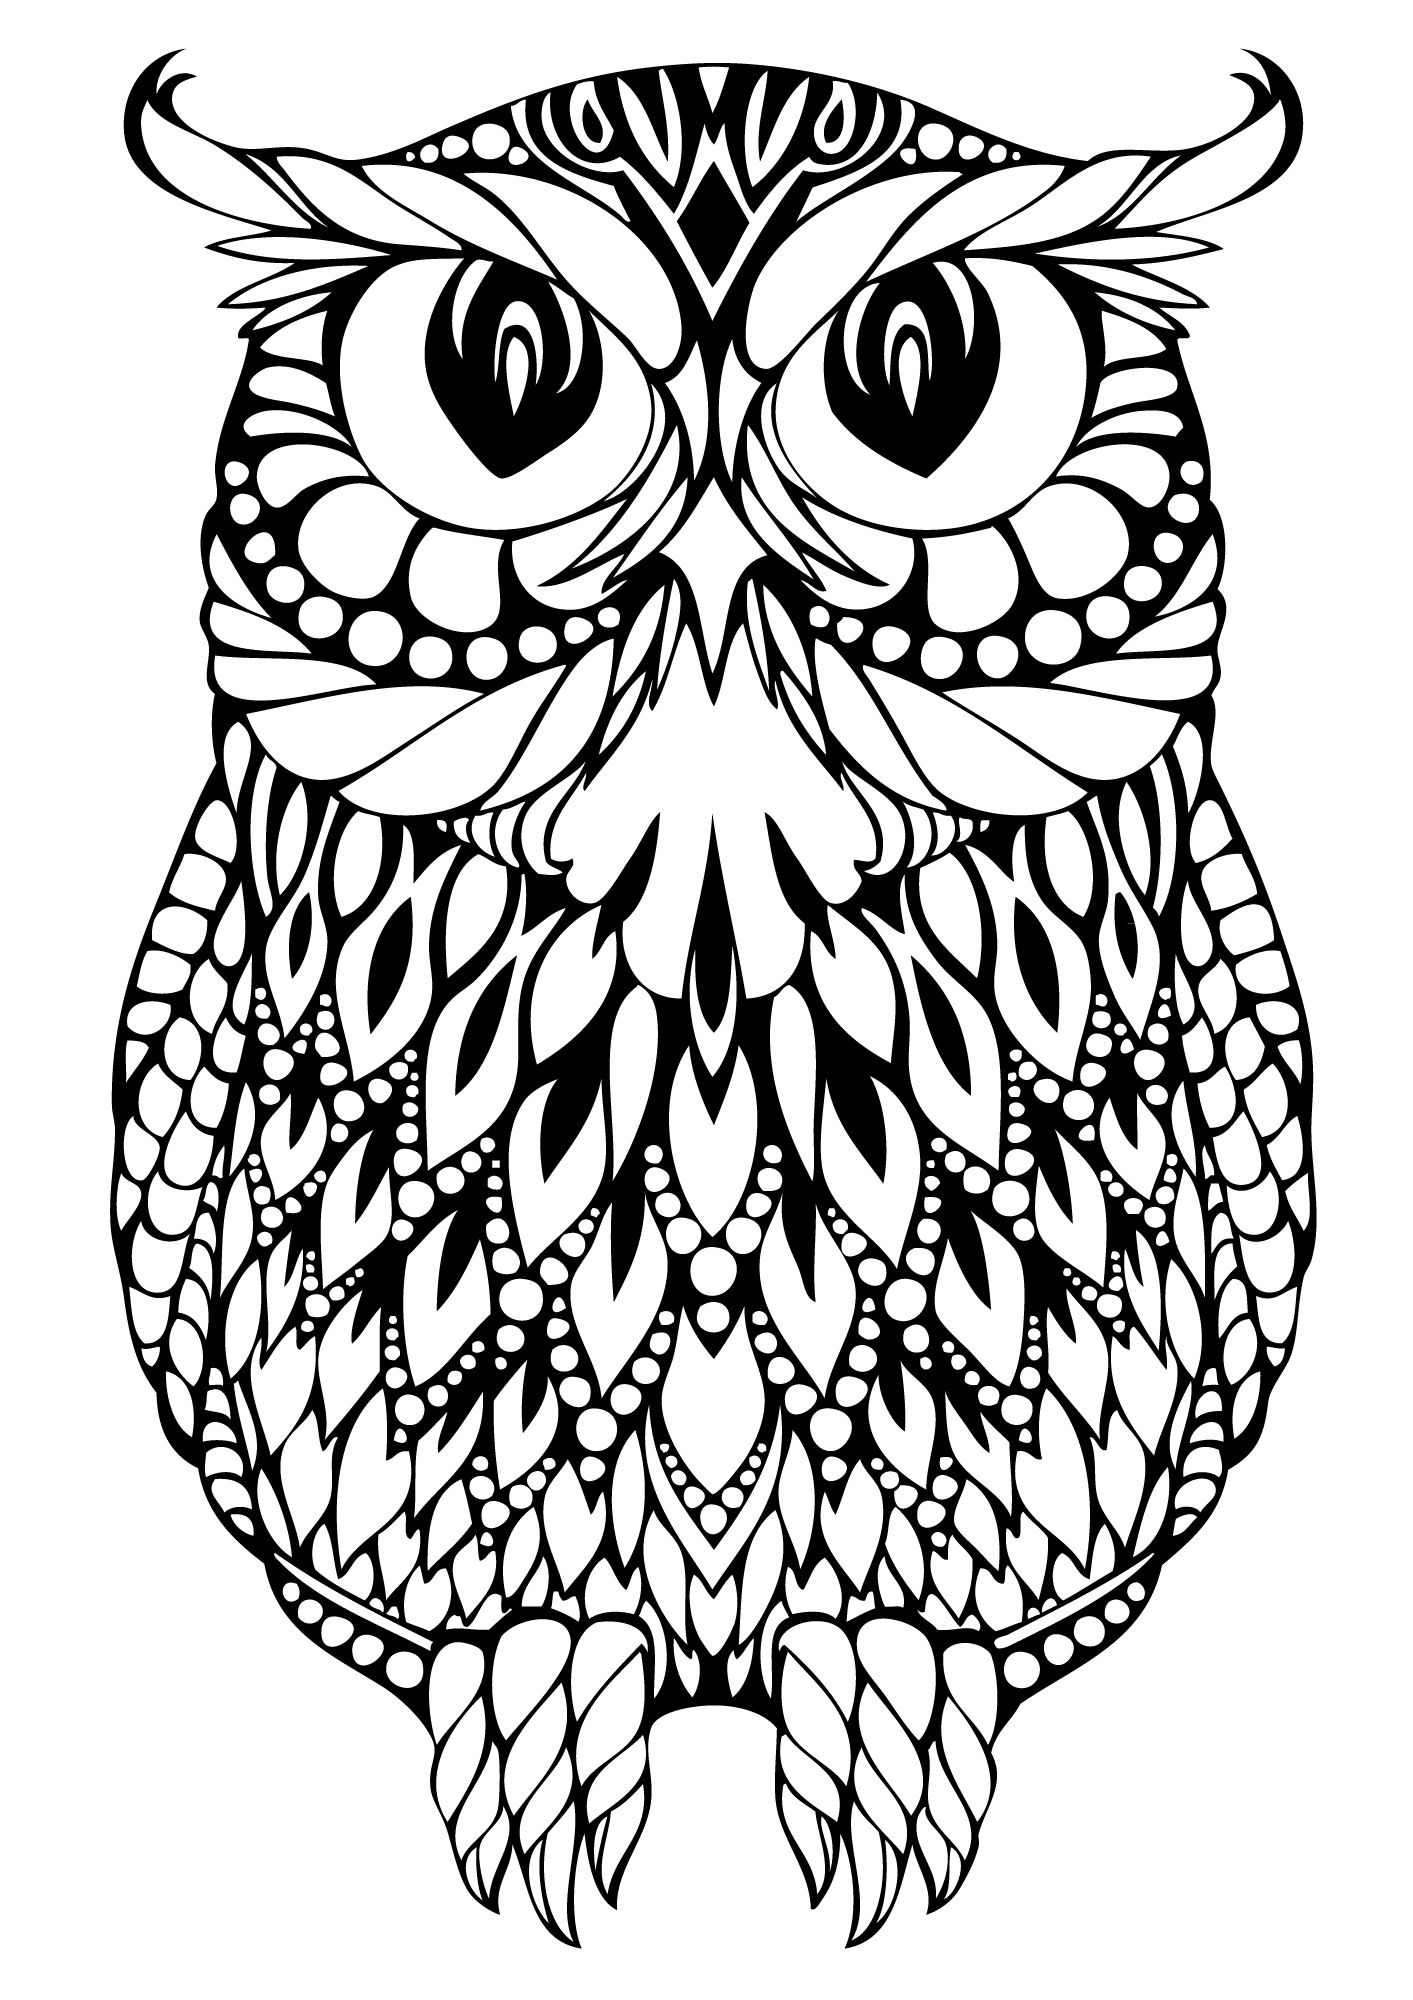 owl coloring pages koloringpages - Coloring Pages Difficult Printable